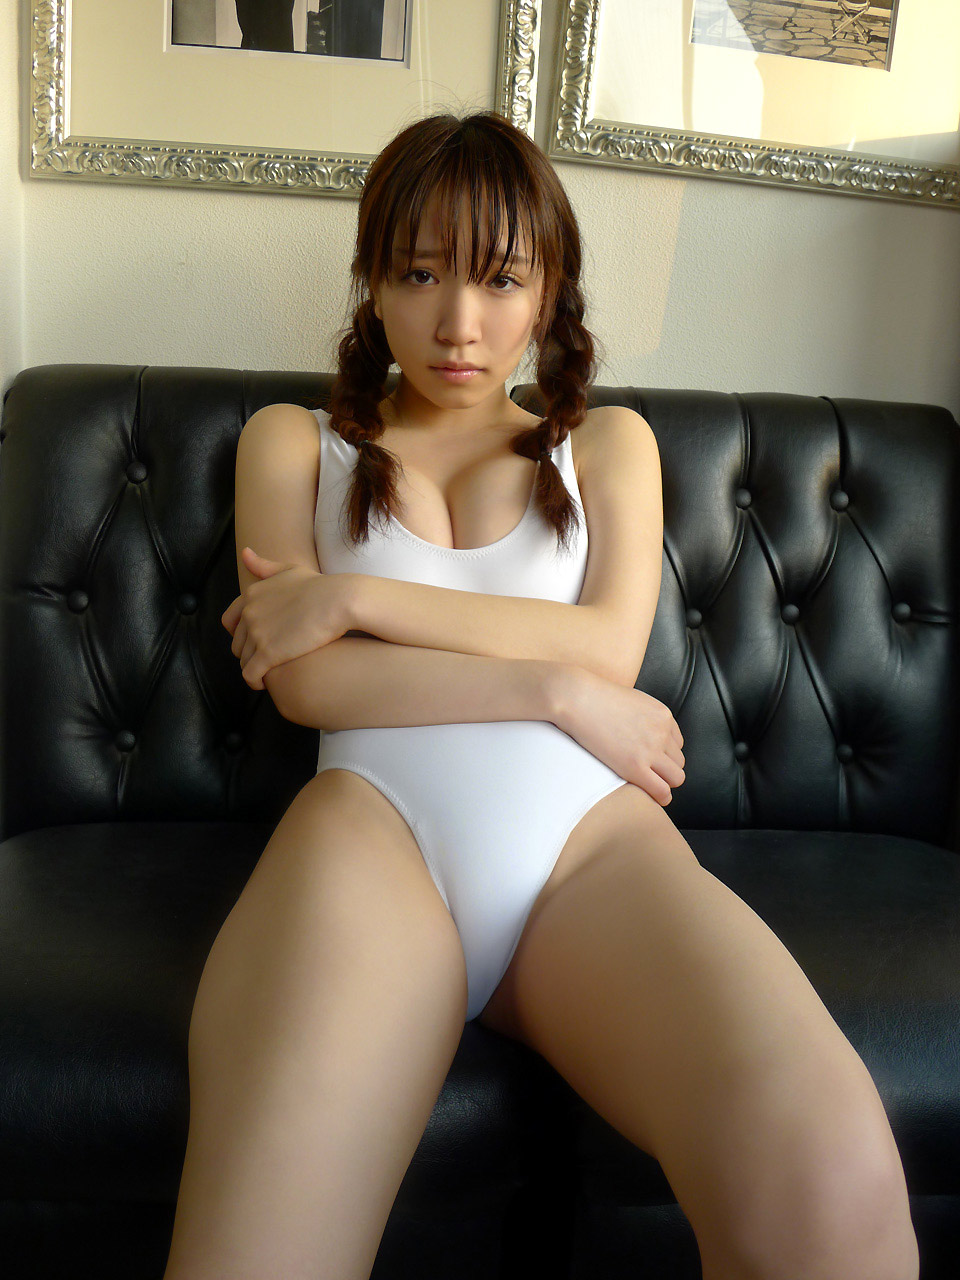 Japan real naked girls pussy, girl tight clothes nude